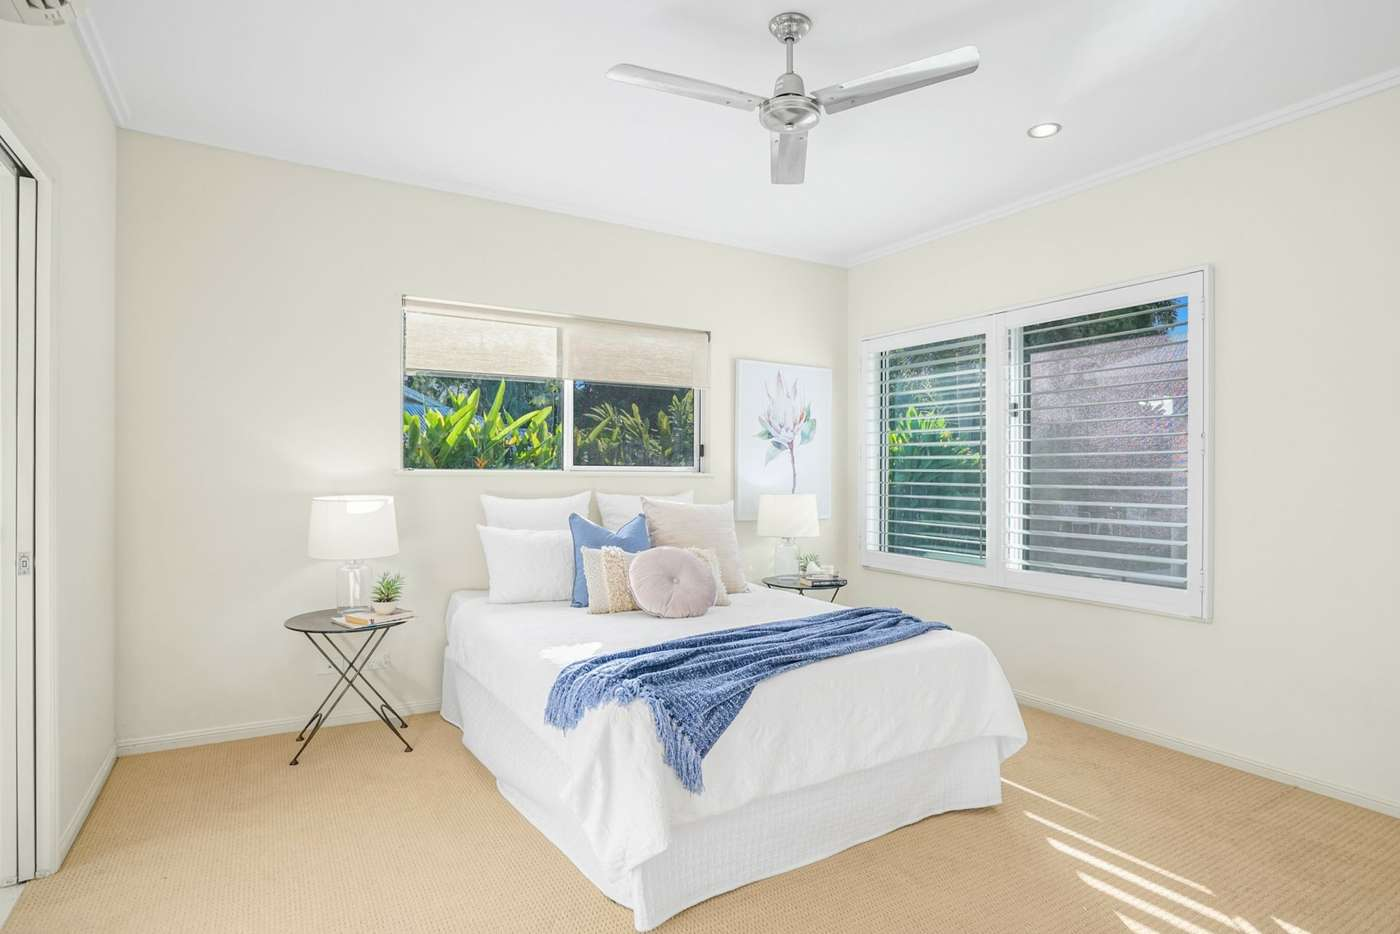 Seventh view of Homely house listing, 3 Findlay Street, Brinsmead QLD 4870